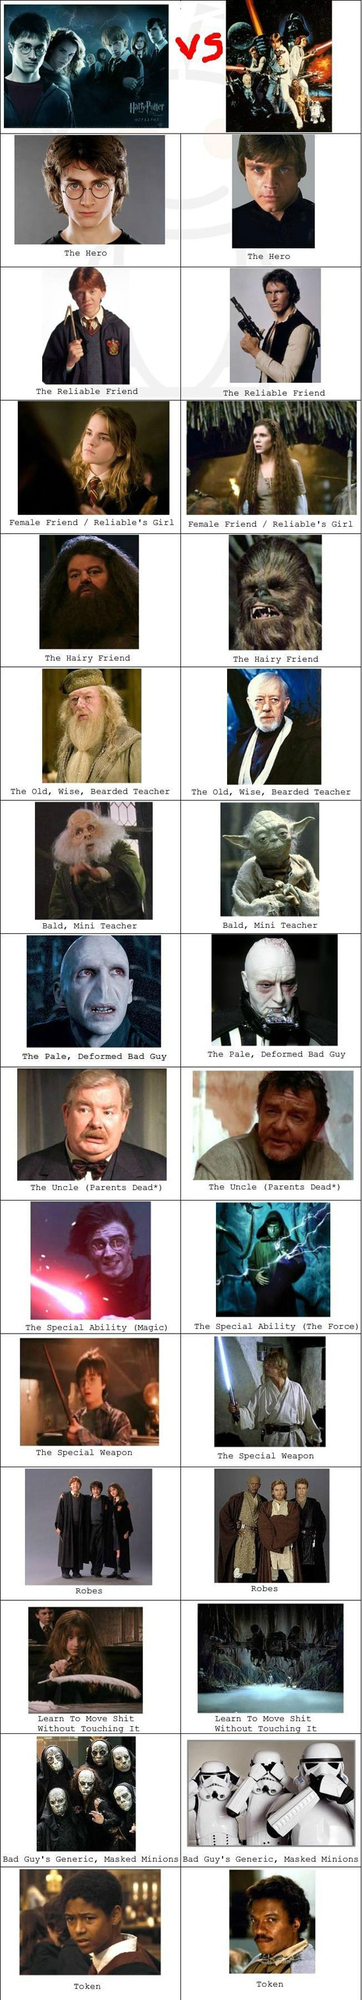 Star Wars Vs Harry Potter